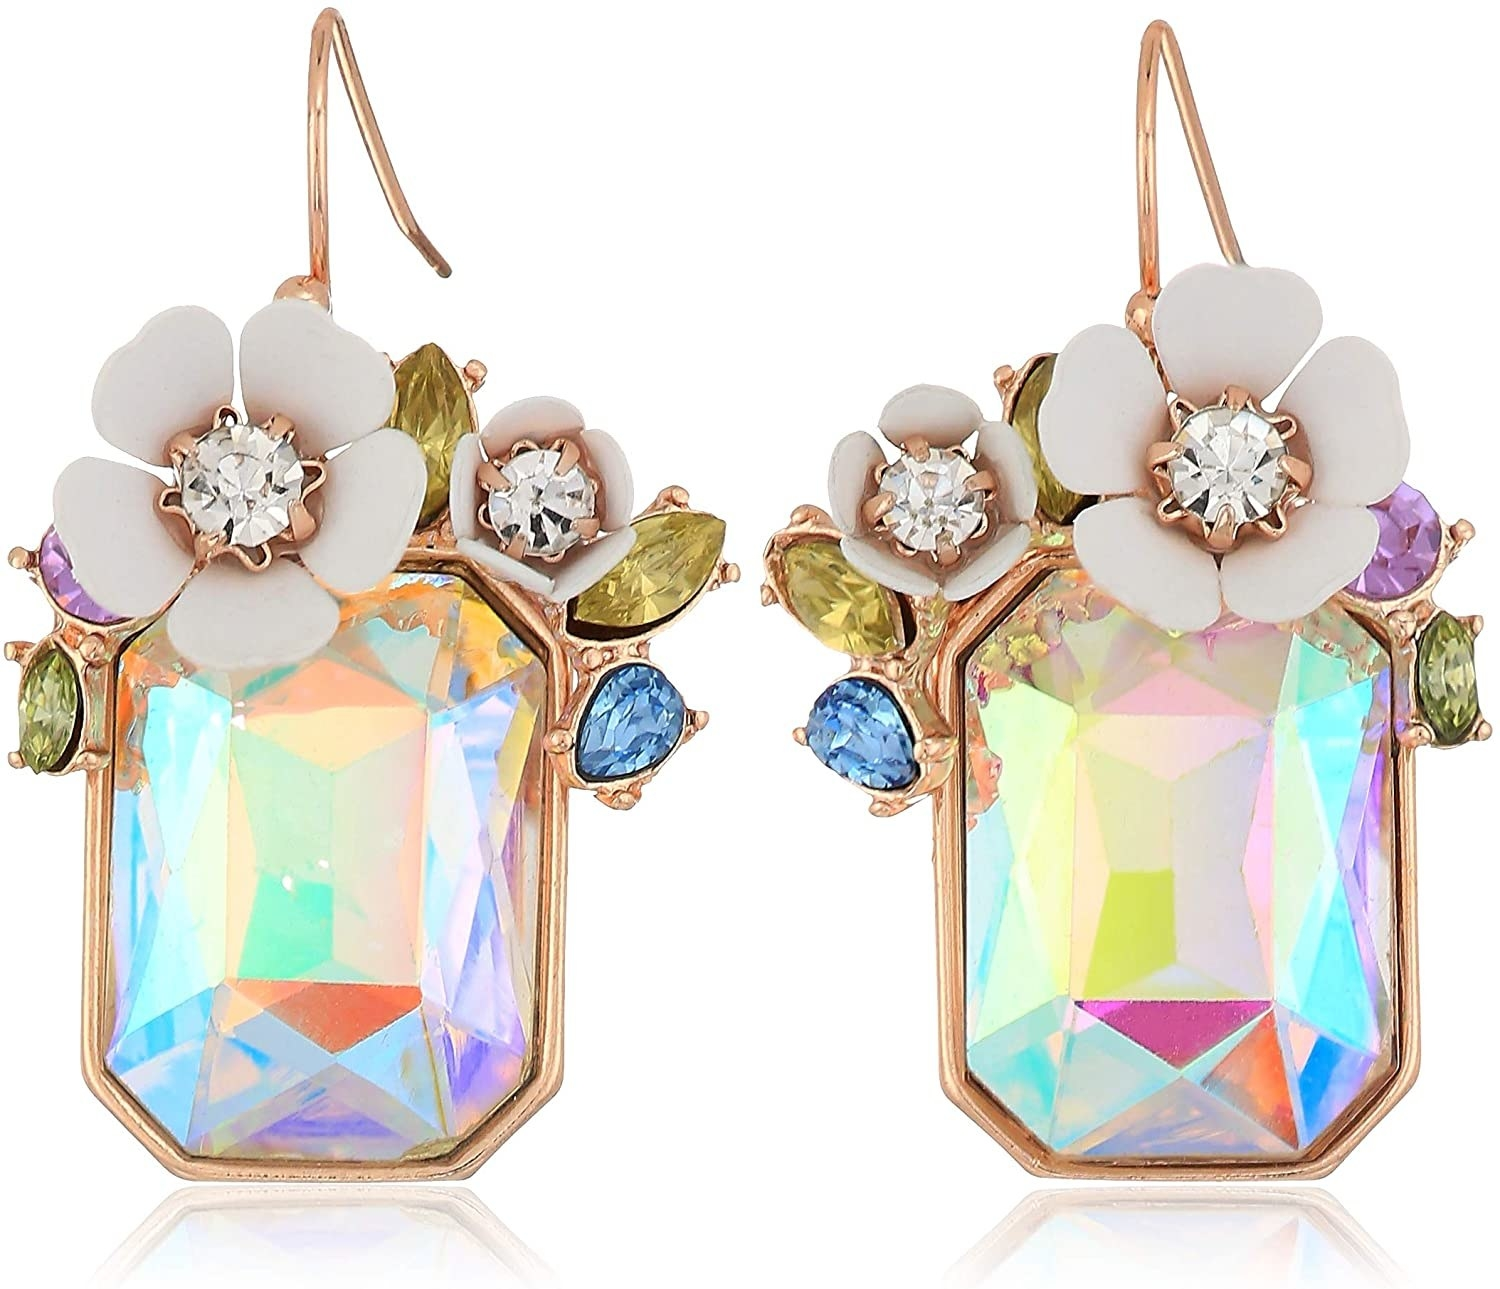 The earrings with a large iridescent stone surrounded by white flowers and colorful rhinestones on the top half